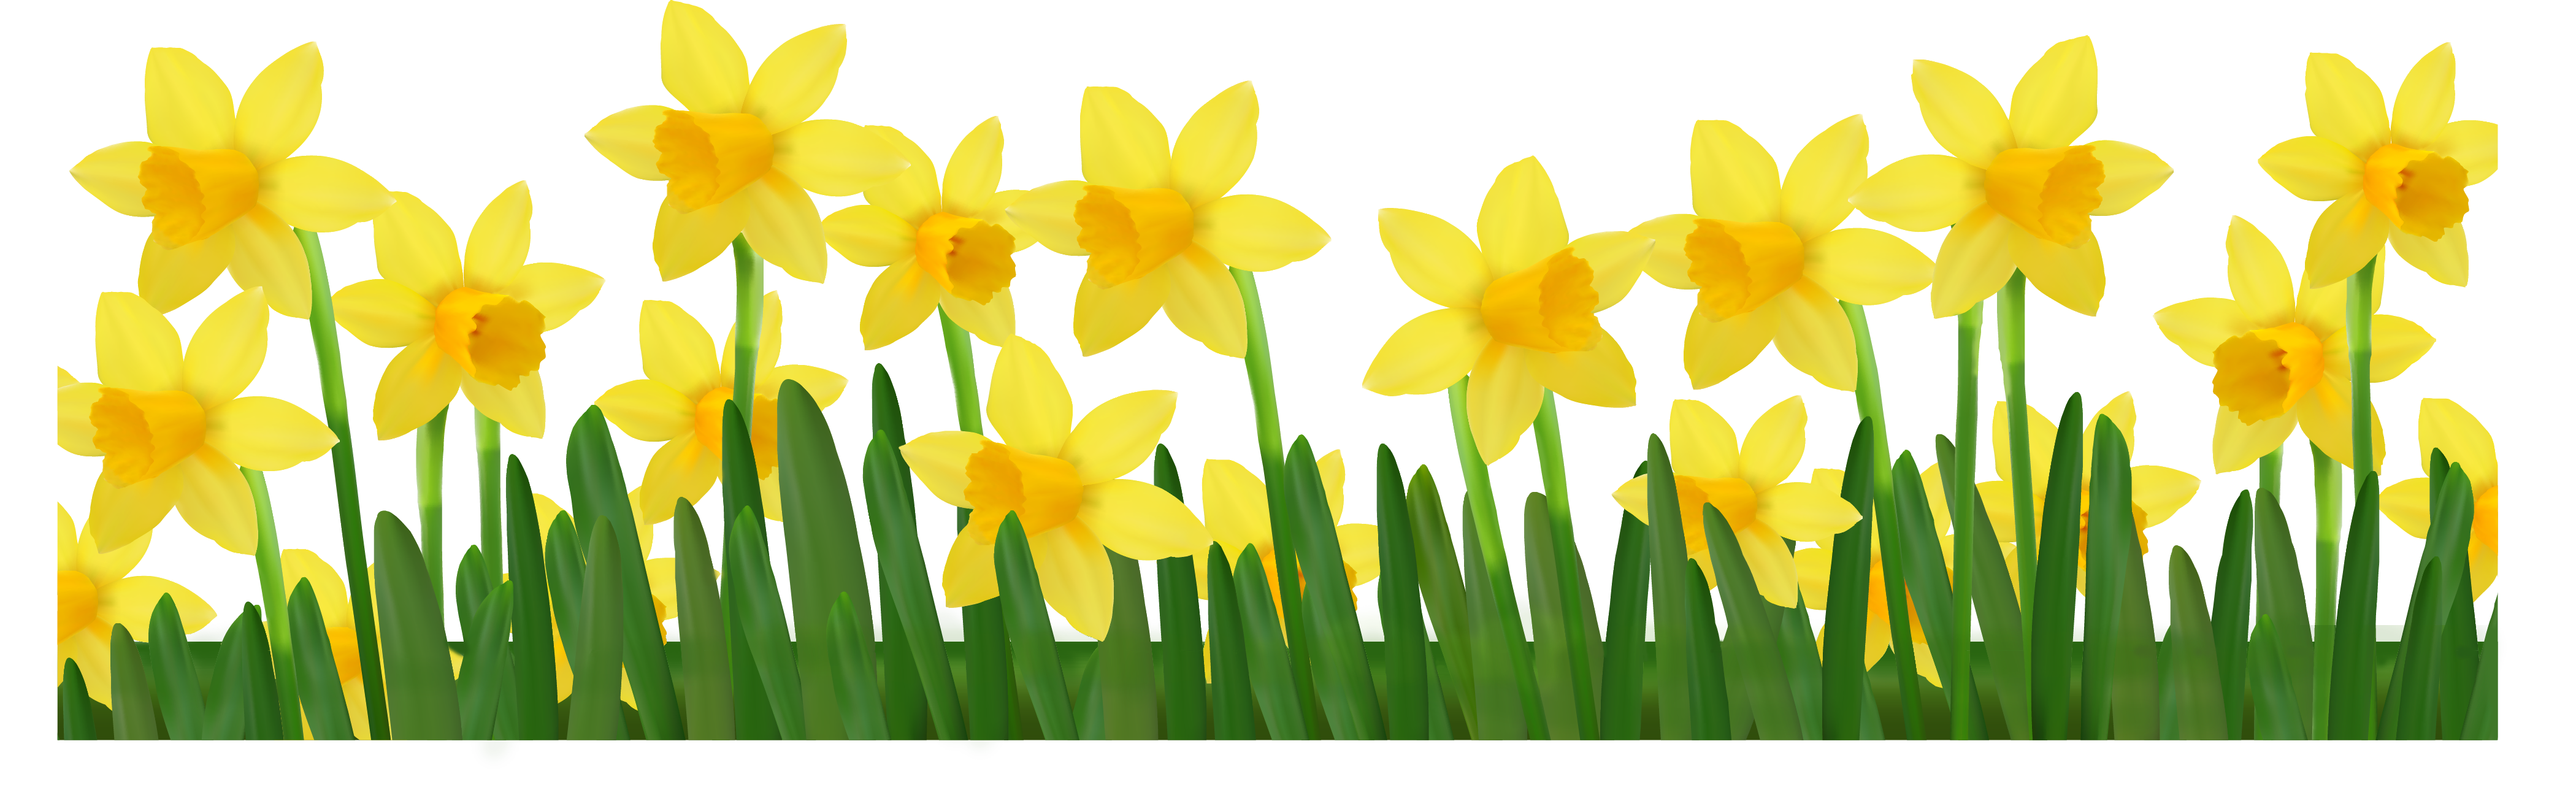 Images Of Daffodils - ClipArt Best